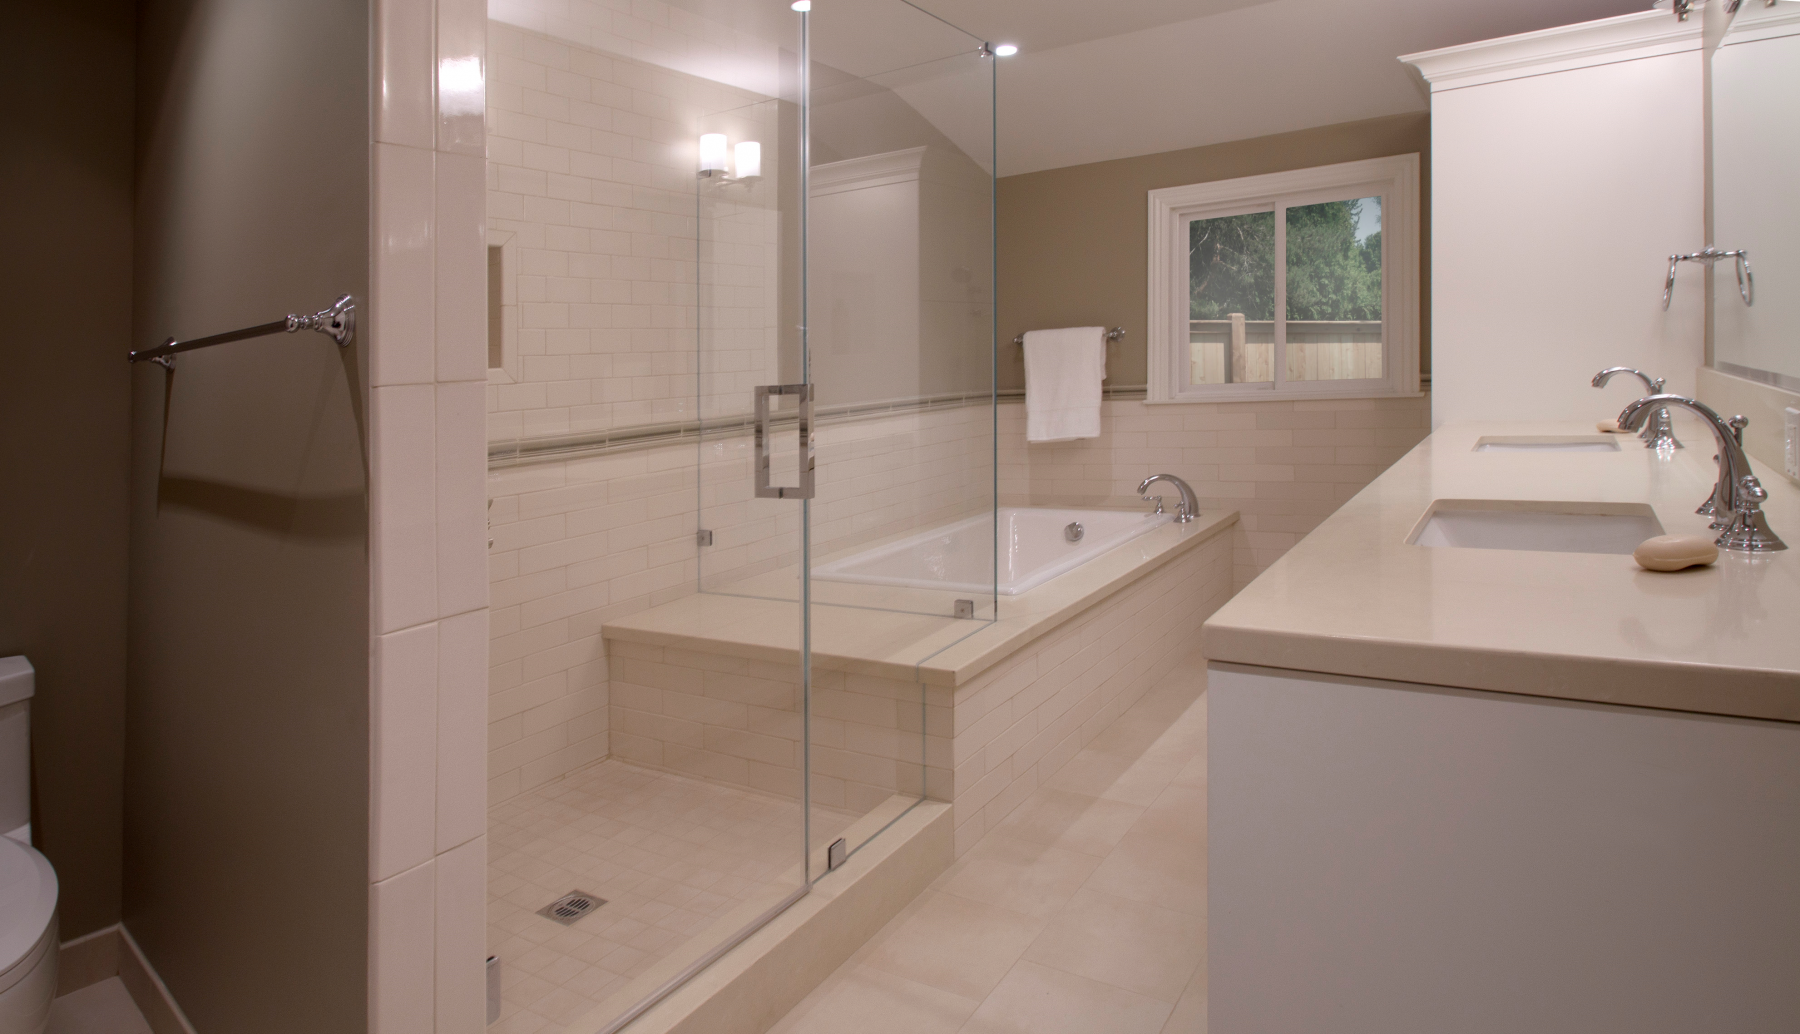 A large frameless glass shower and soaking tub | home | Pinterest ...